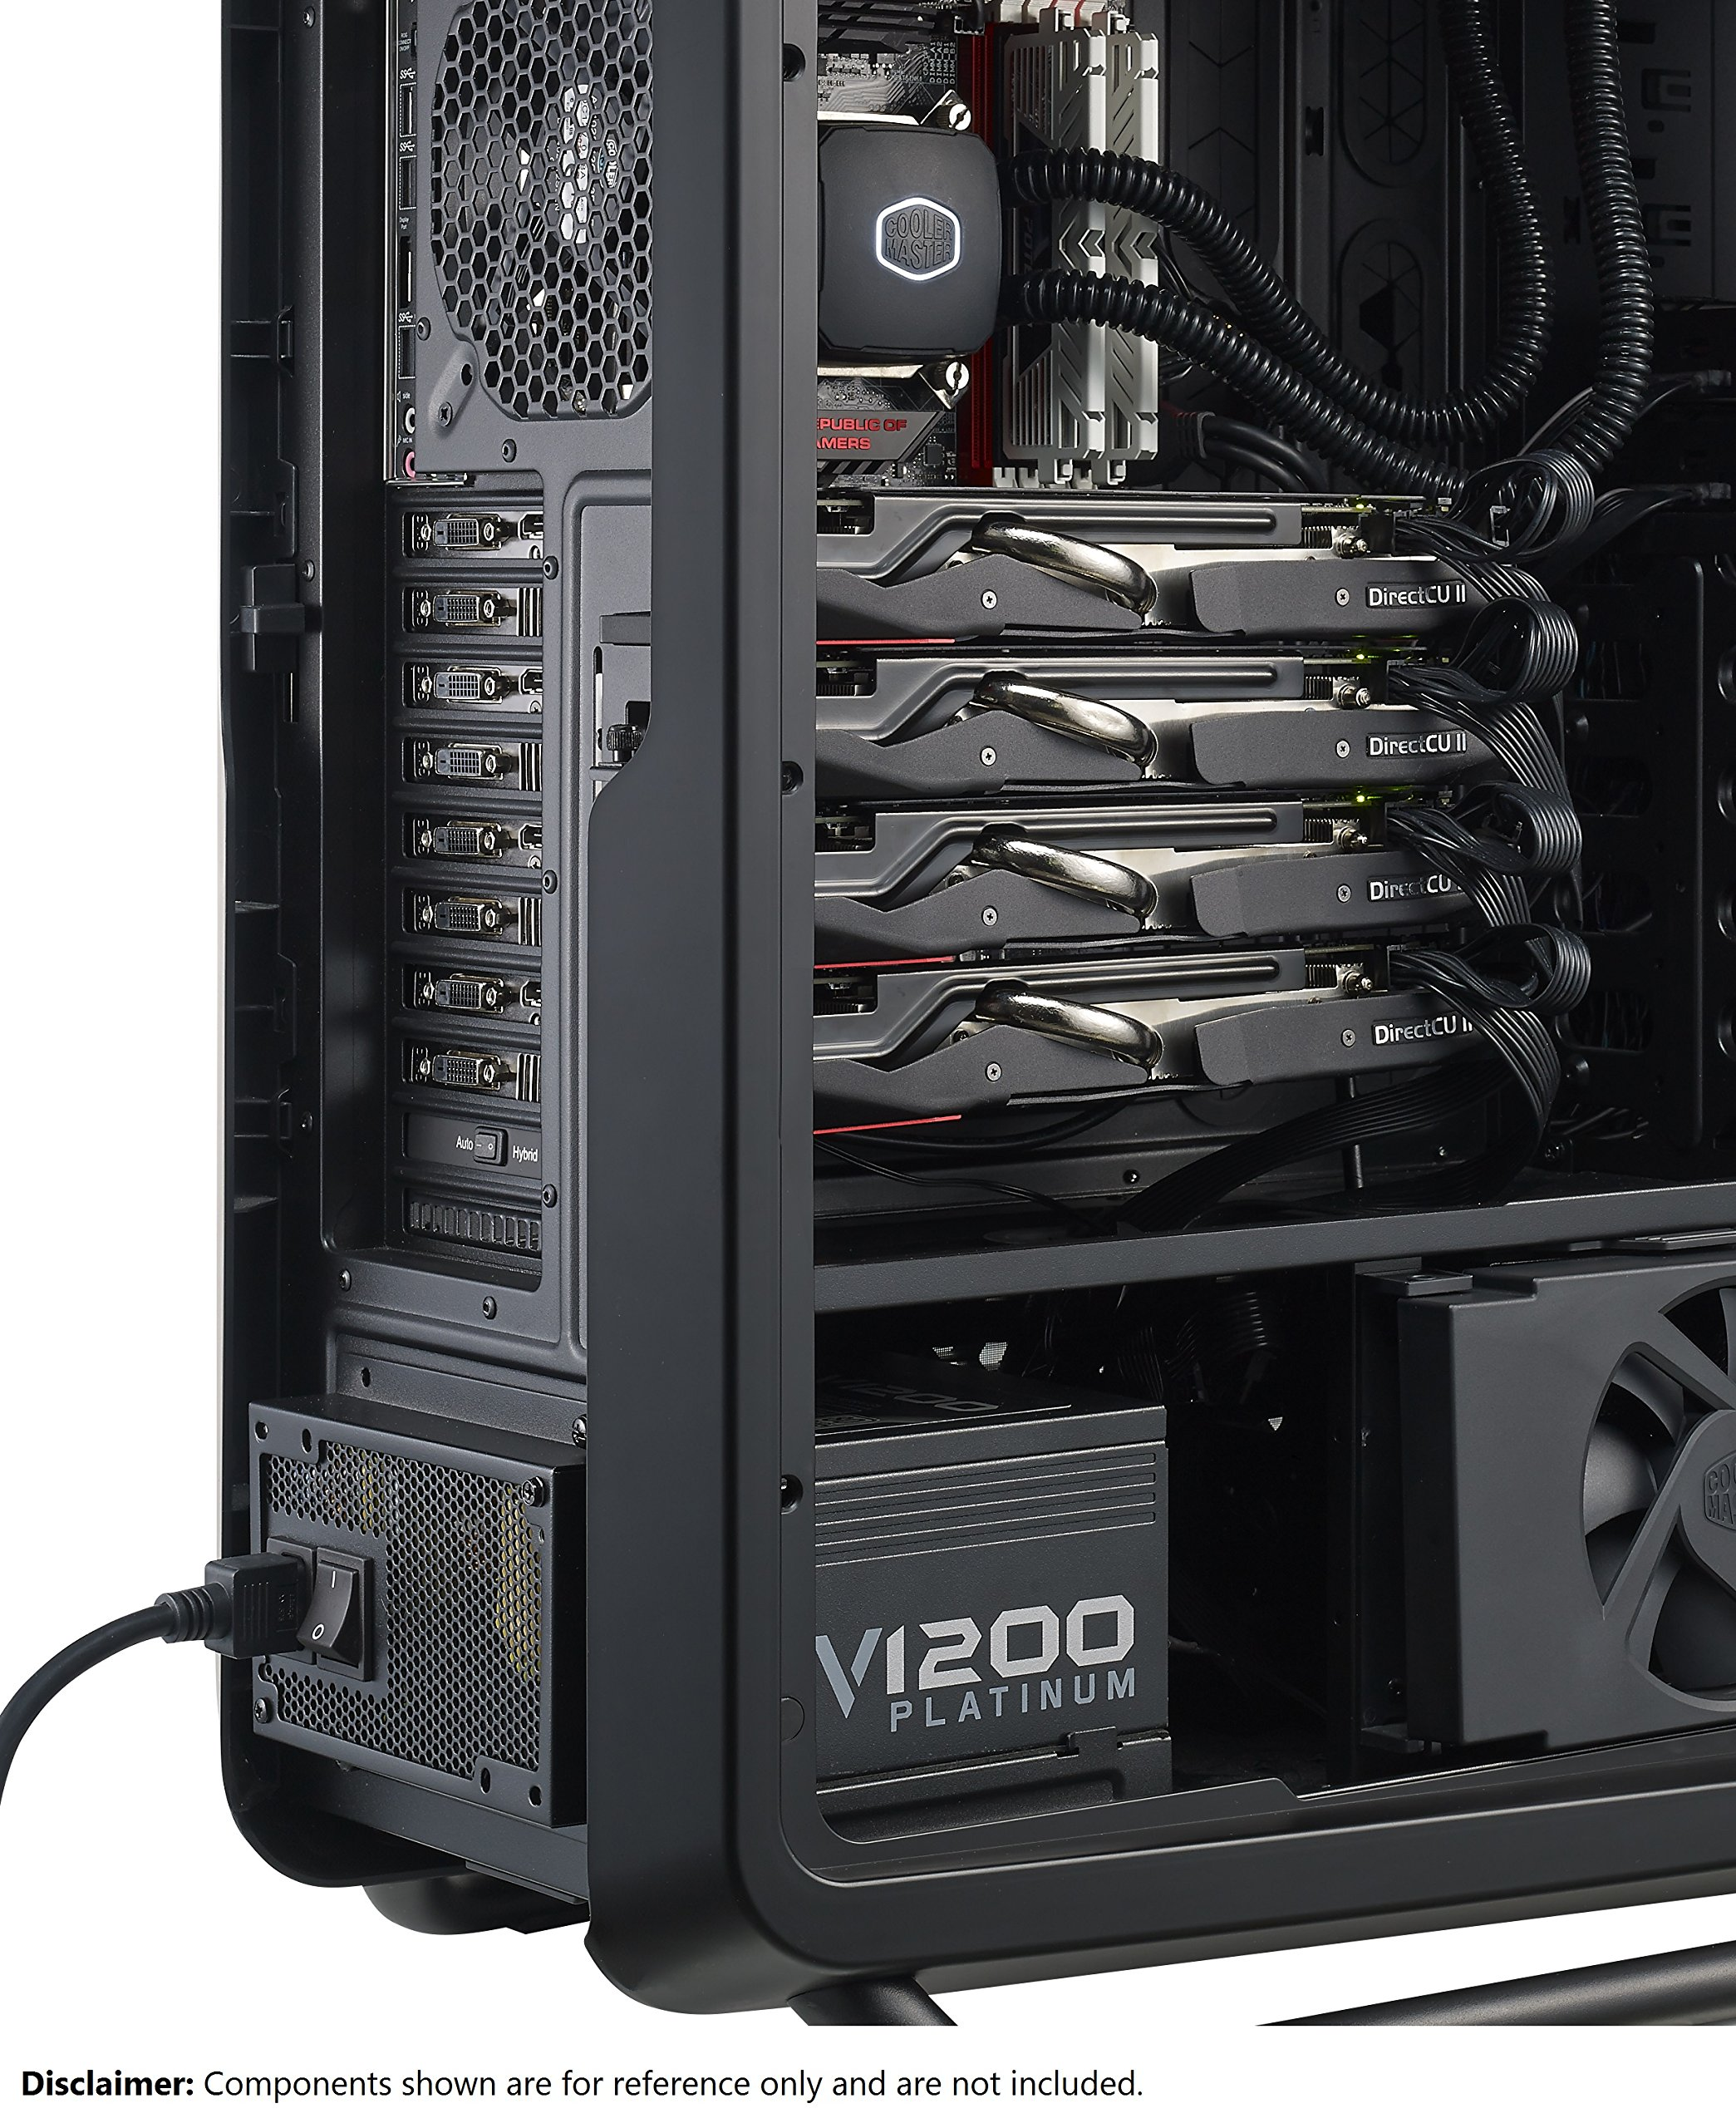 Cooler Master V1200 - Fully Modular 1200W 80 PLUS Platinum PSU with Silent Fanless Mode Operation (6th Generation Skylake Ready) by Cooler Master